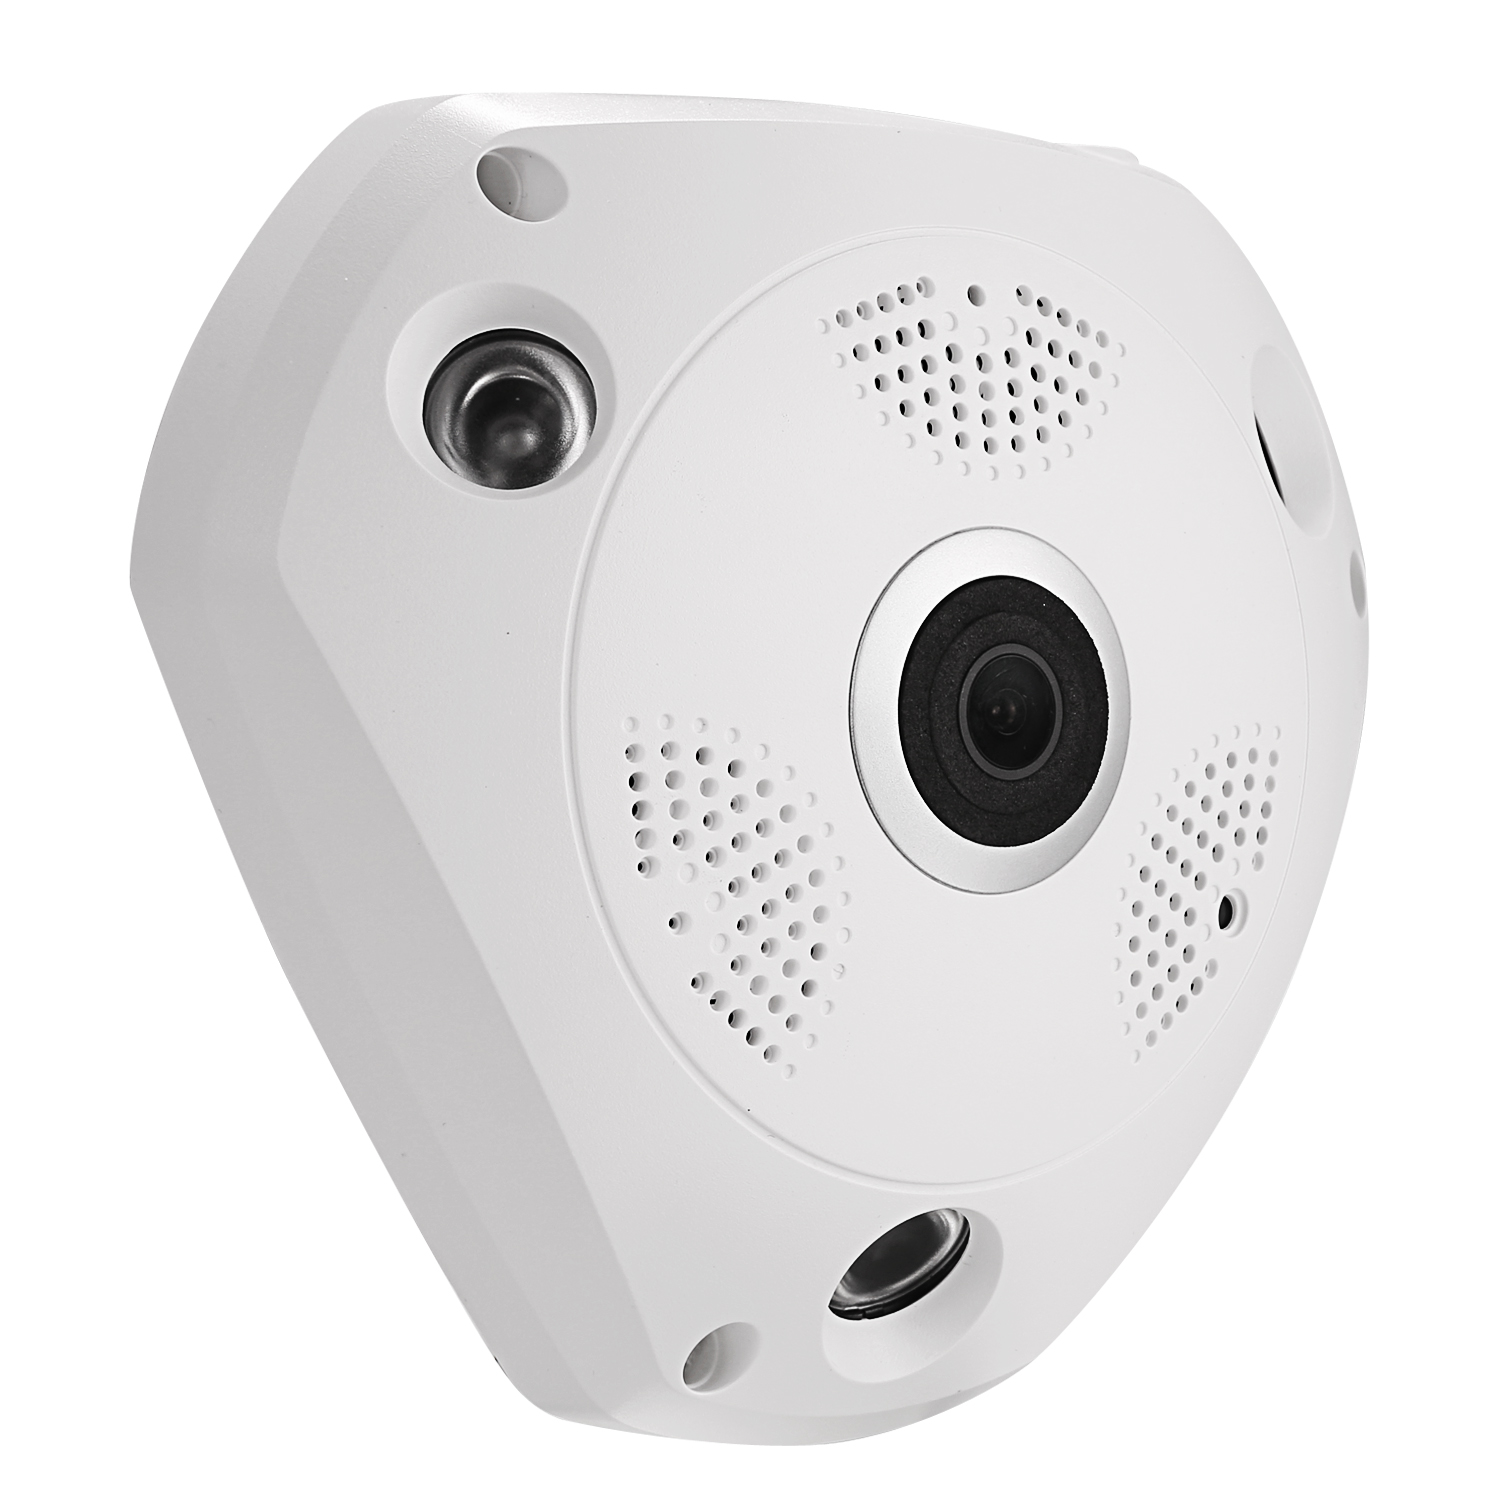 best fisheye 360 panoramic <strong>wifi</strong> rj45 5MP p2p hisilicon 3518 ip camera 128G sd card indoor night vision <strong>wifi</strong> wireless ip camera